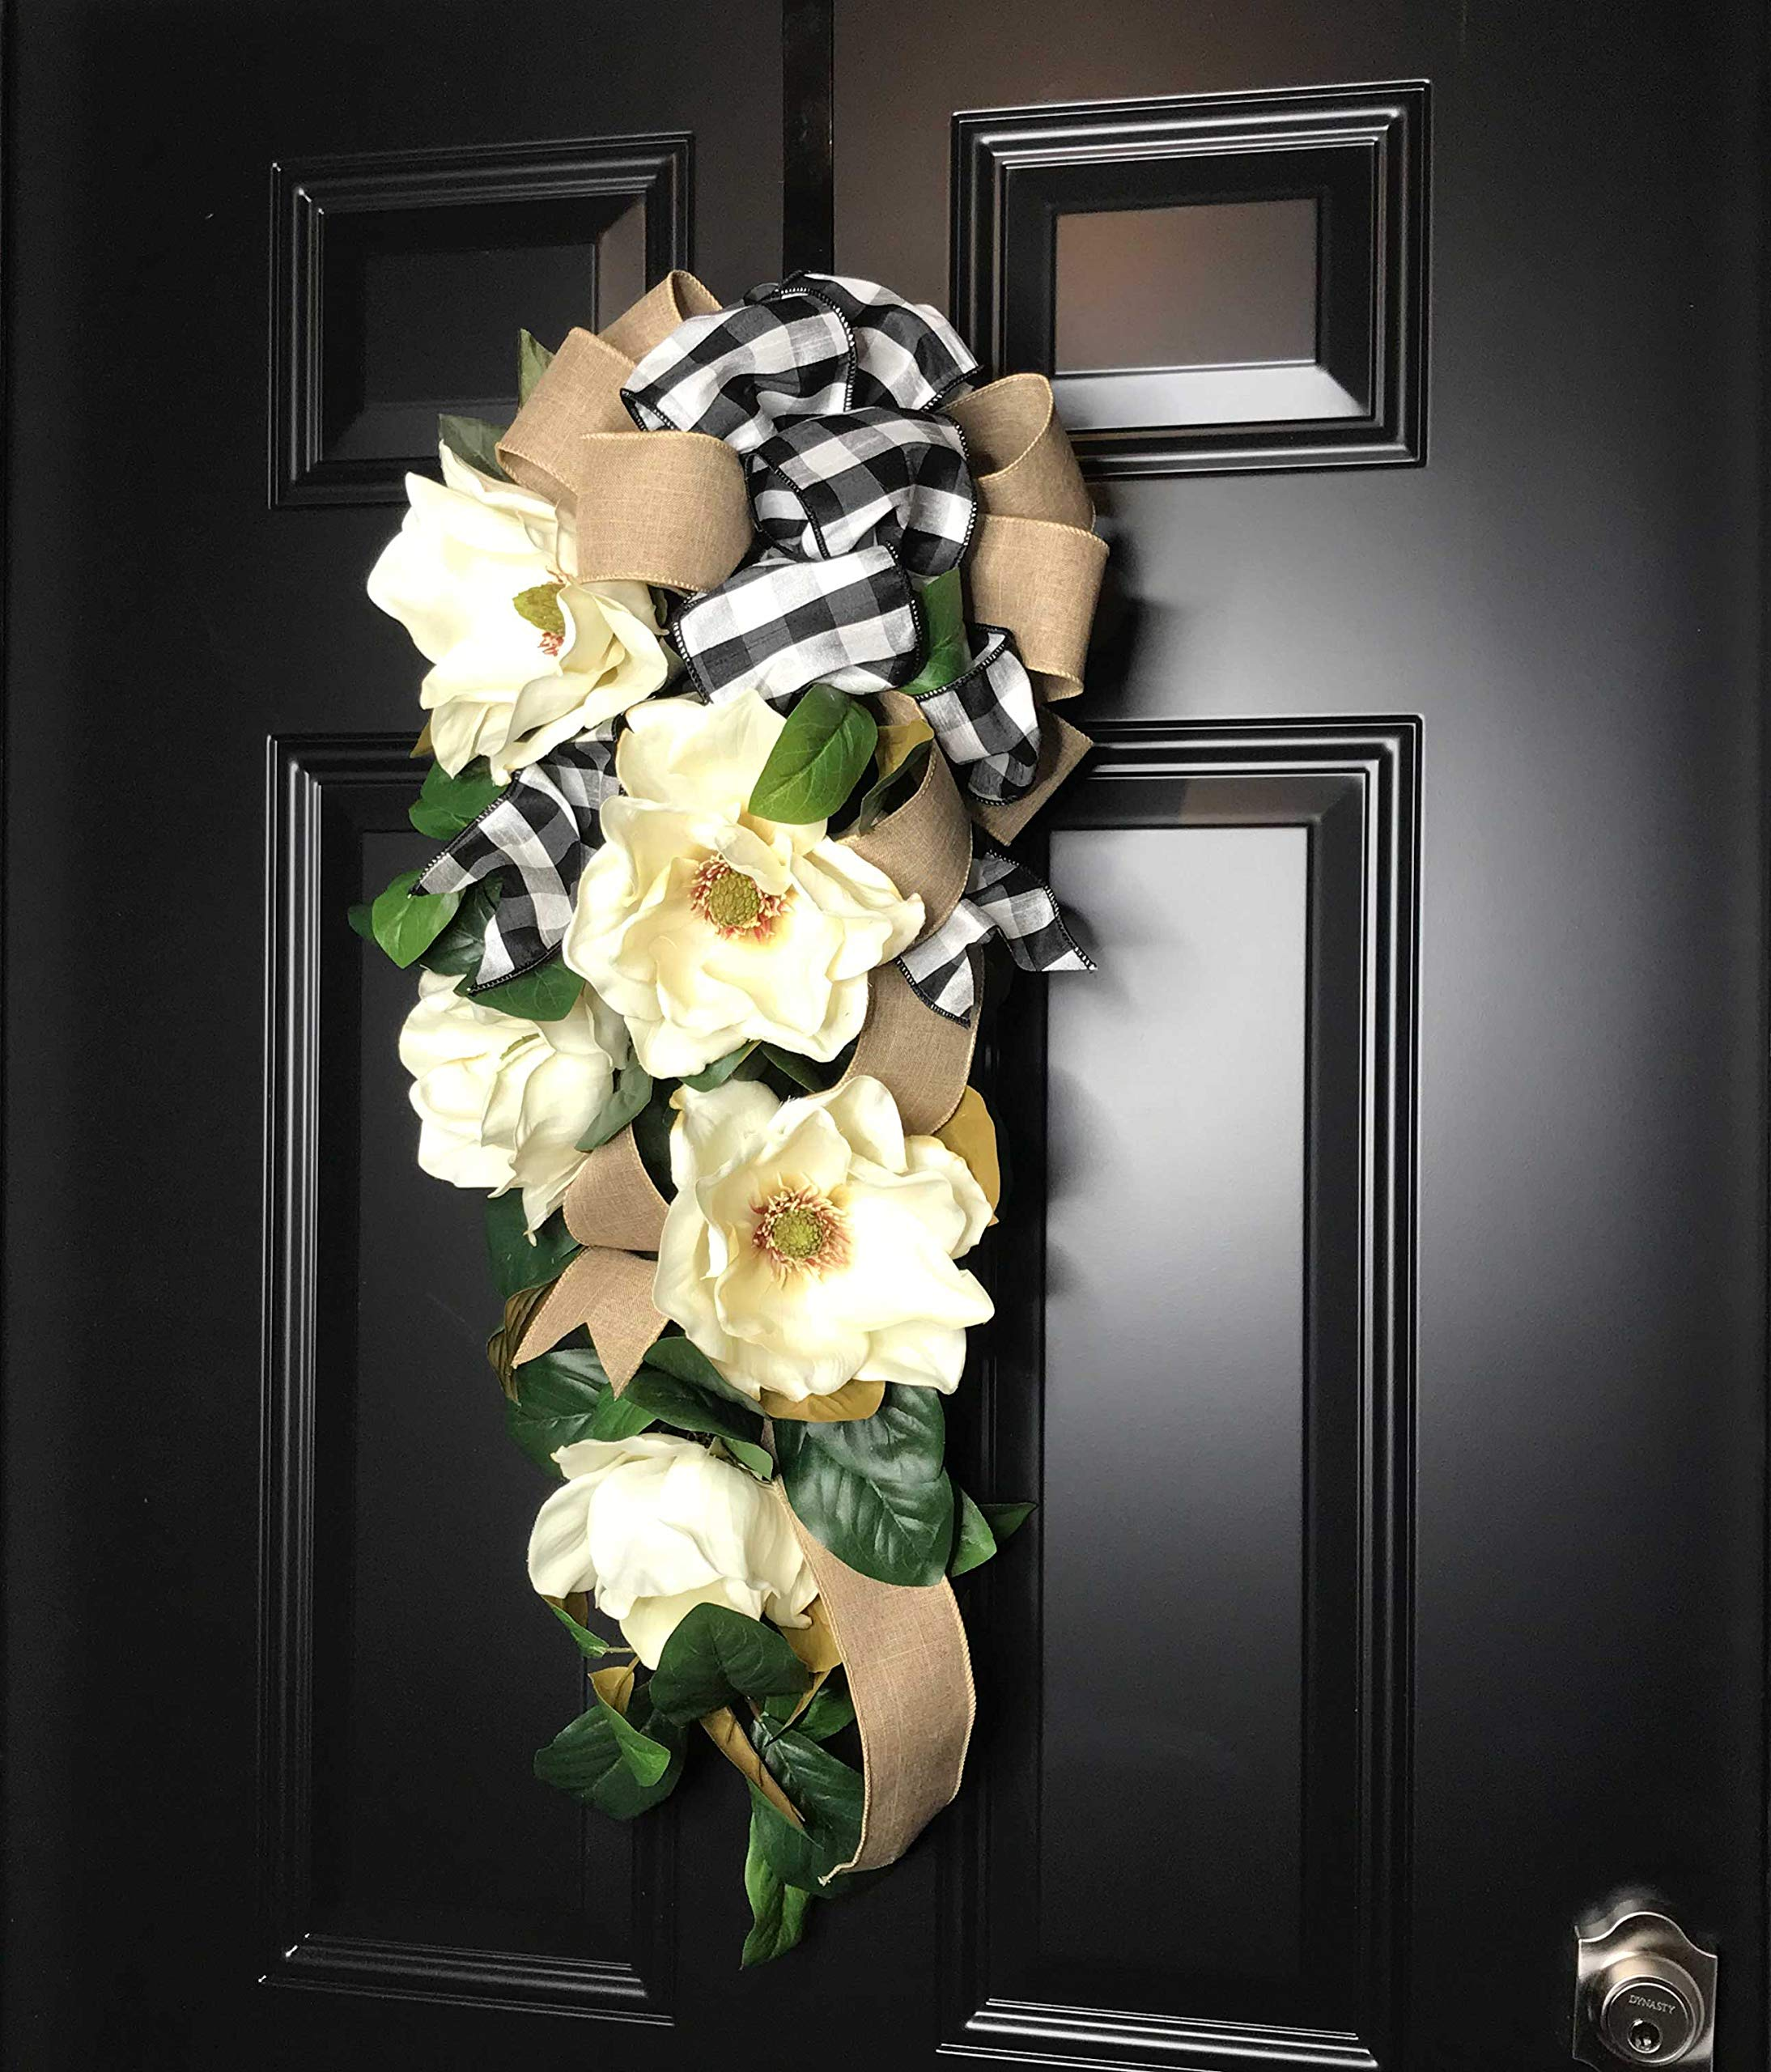 Large Southern Magnolia Teardrop Floral Swag Wreath w/Buffalo Plaid/Check Bow for Front Door Porch Indoor Wall Farmhouse Decor Spring Springtime Summer Summertime Year Round, Handmade, 30''L x 18'' W by Wreath and Vine, LLC (Image #3)